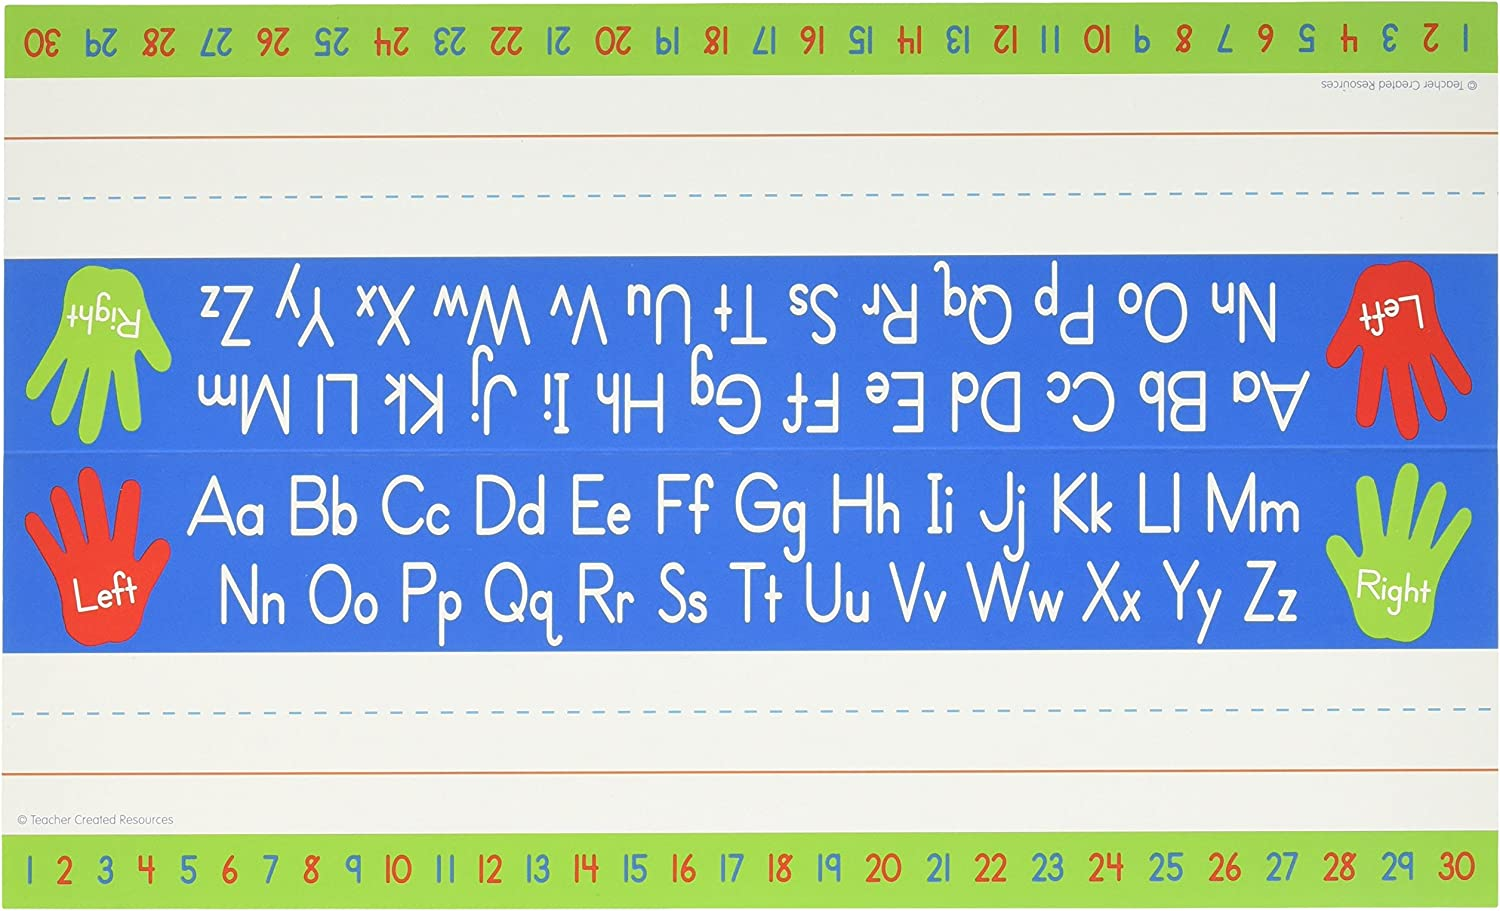 Teacher Created Resources 5723 Left Right Alphabet Tented Name Plate